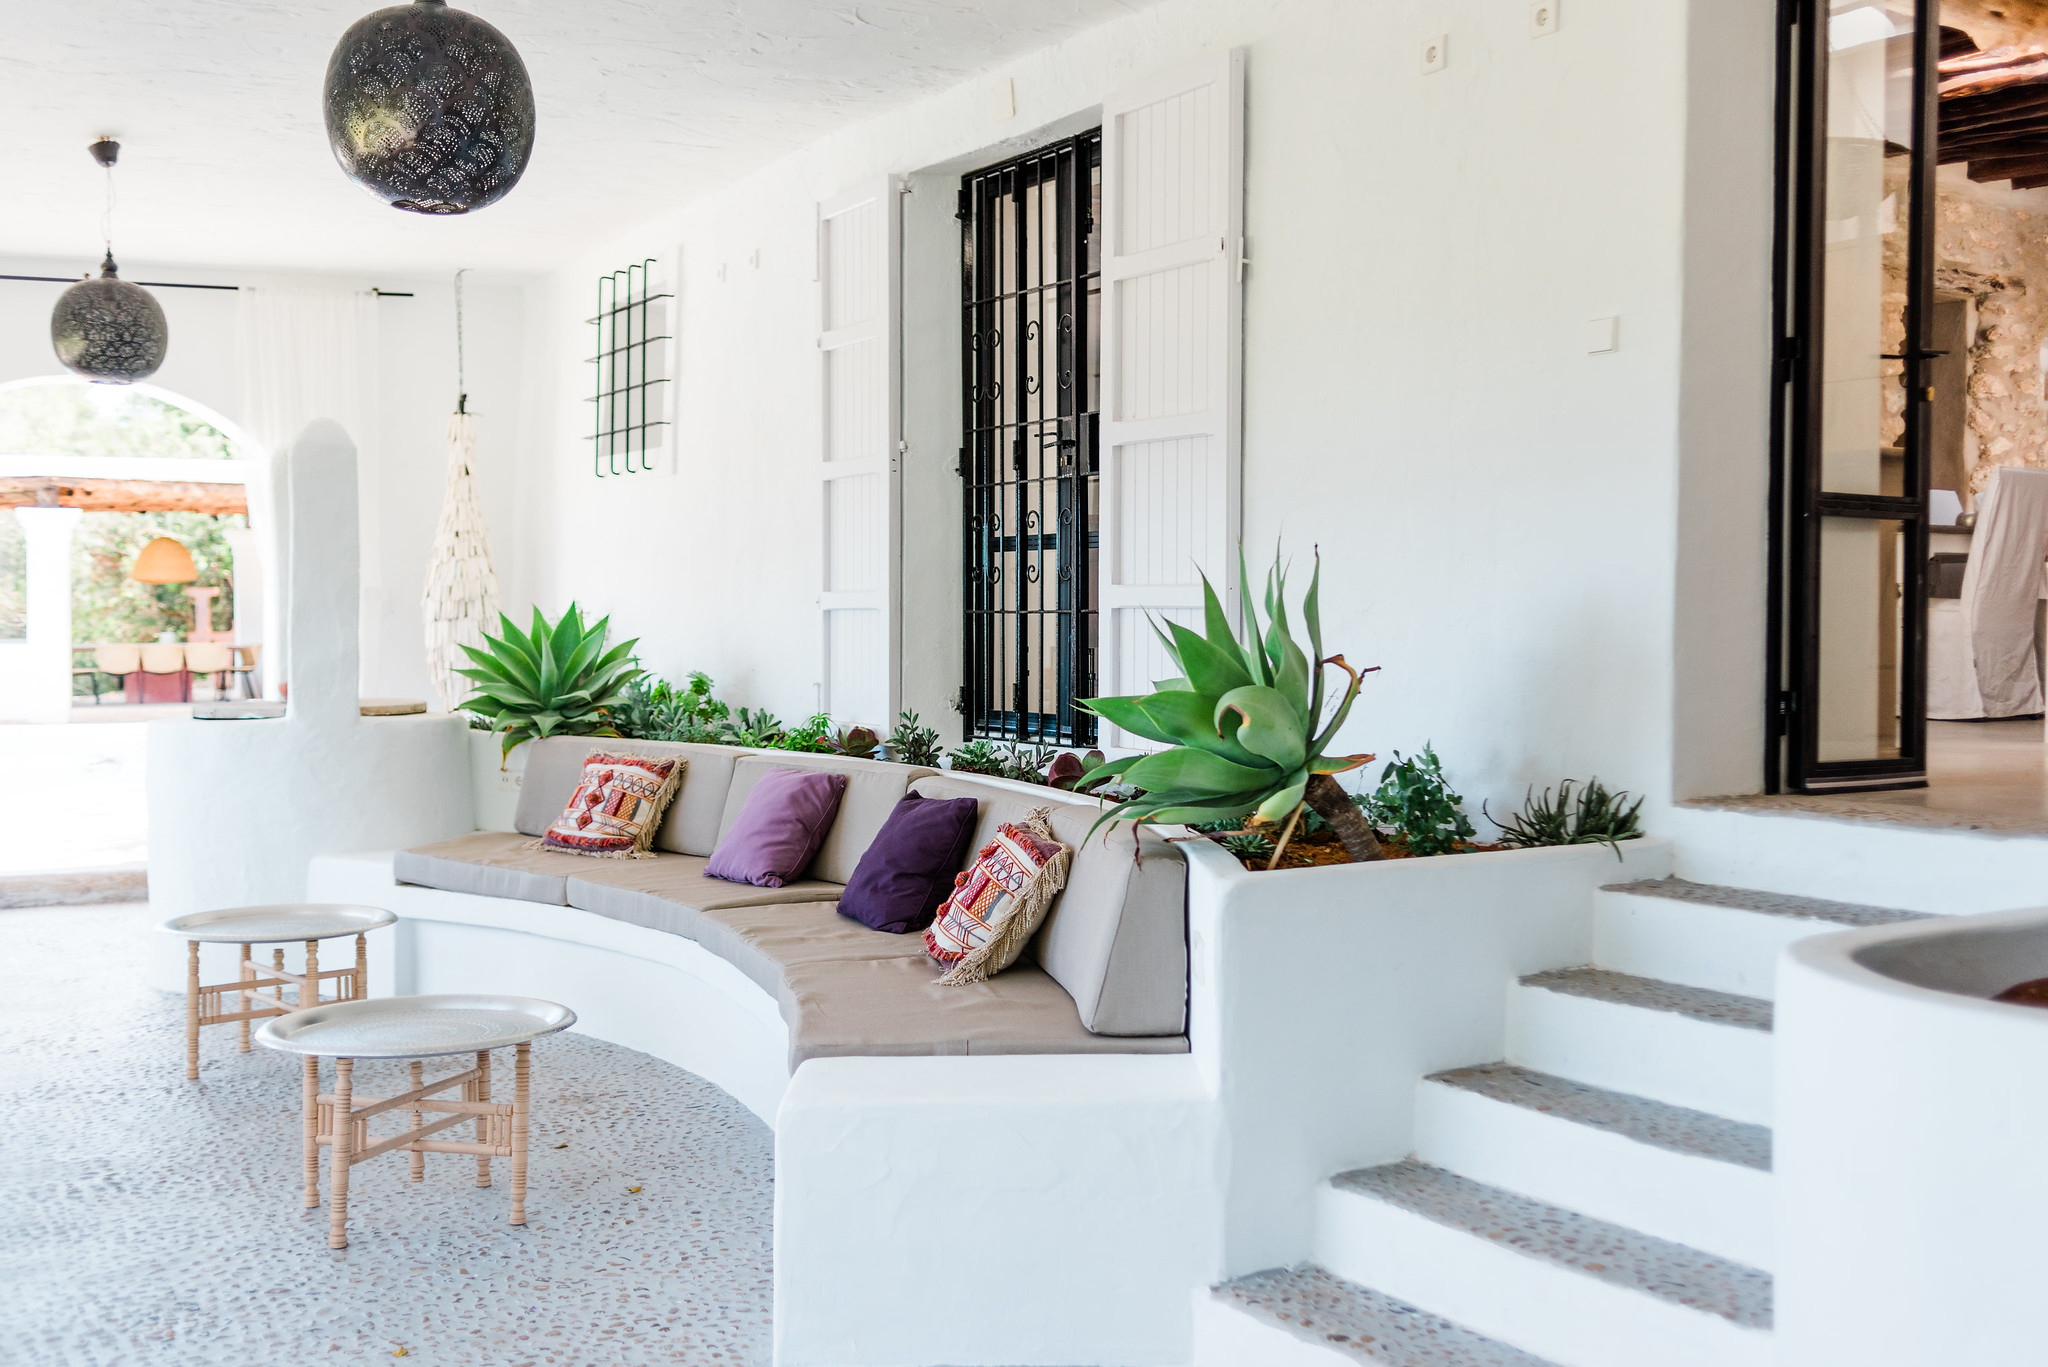 https://www.white-ibiza.com/wp-content/uploads/2020/06/white-ibiza-villas-can-calma-exterior-outside-seating2.jpg